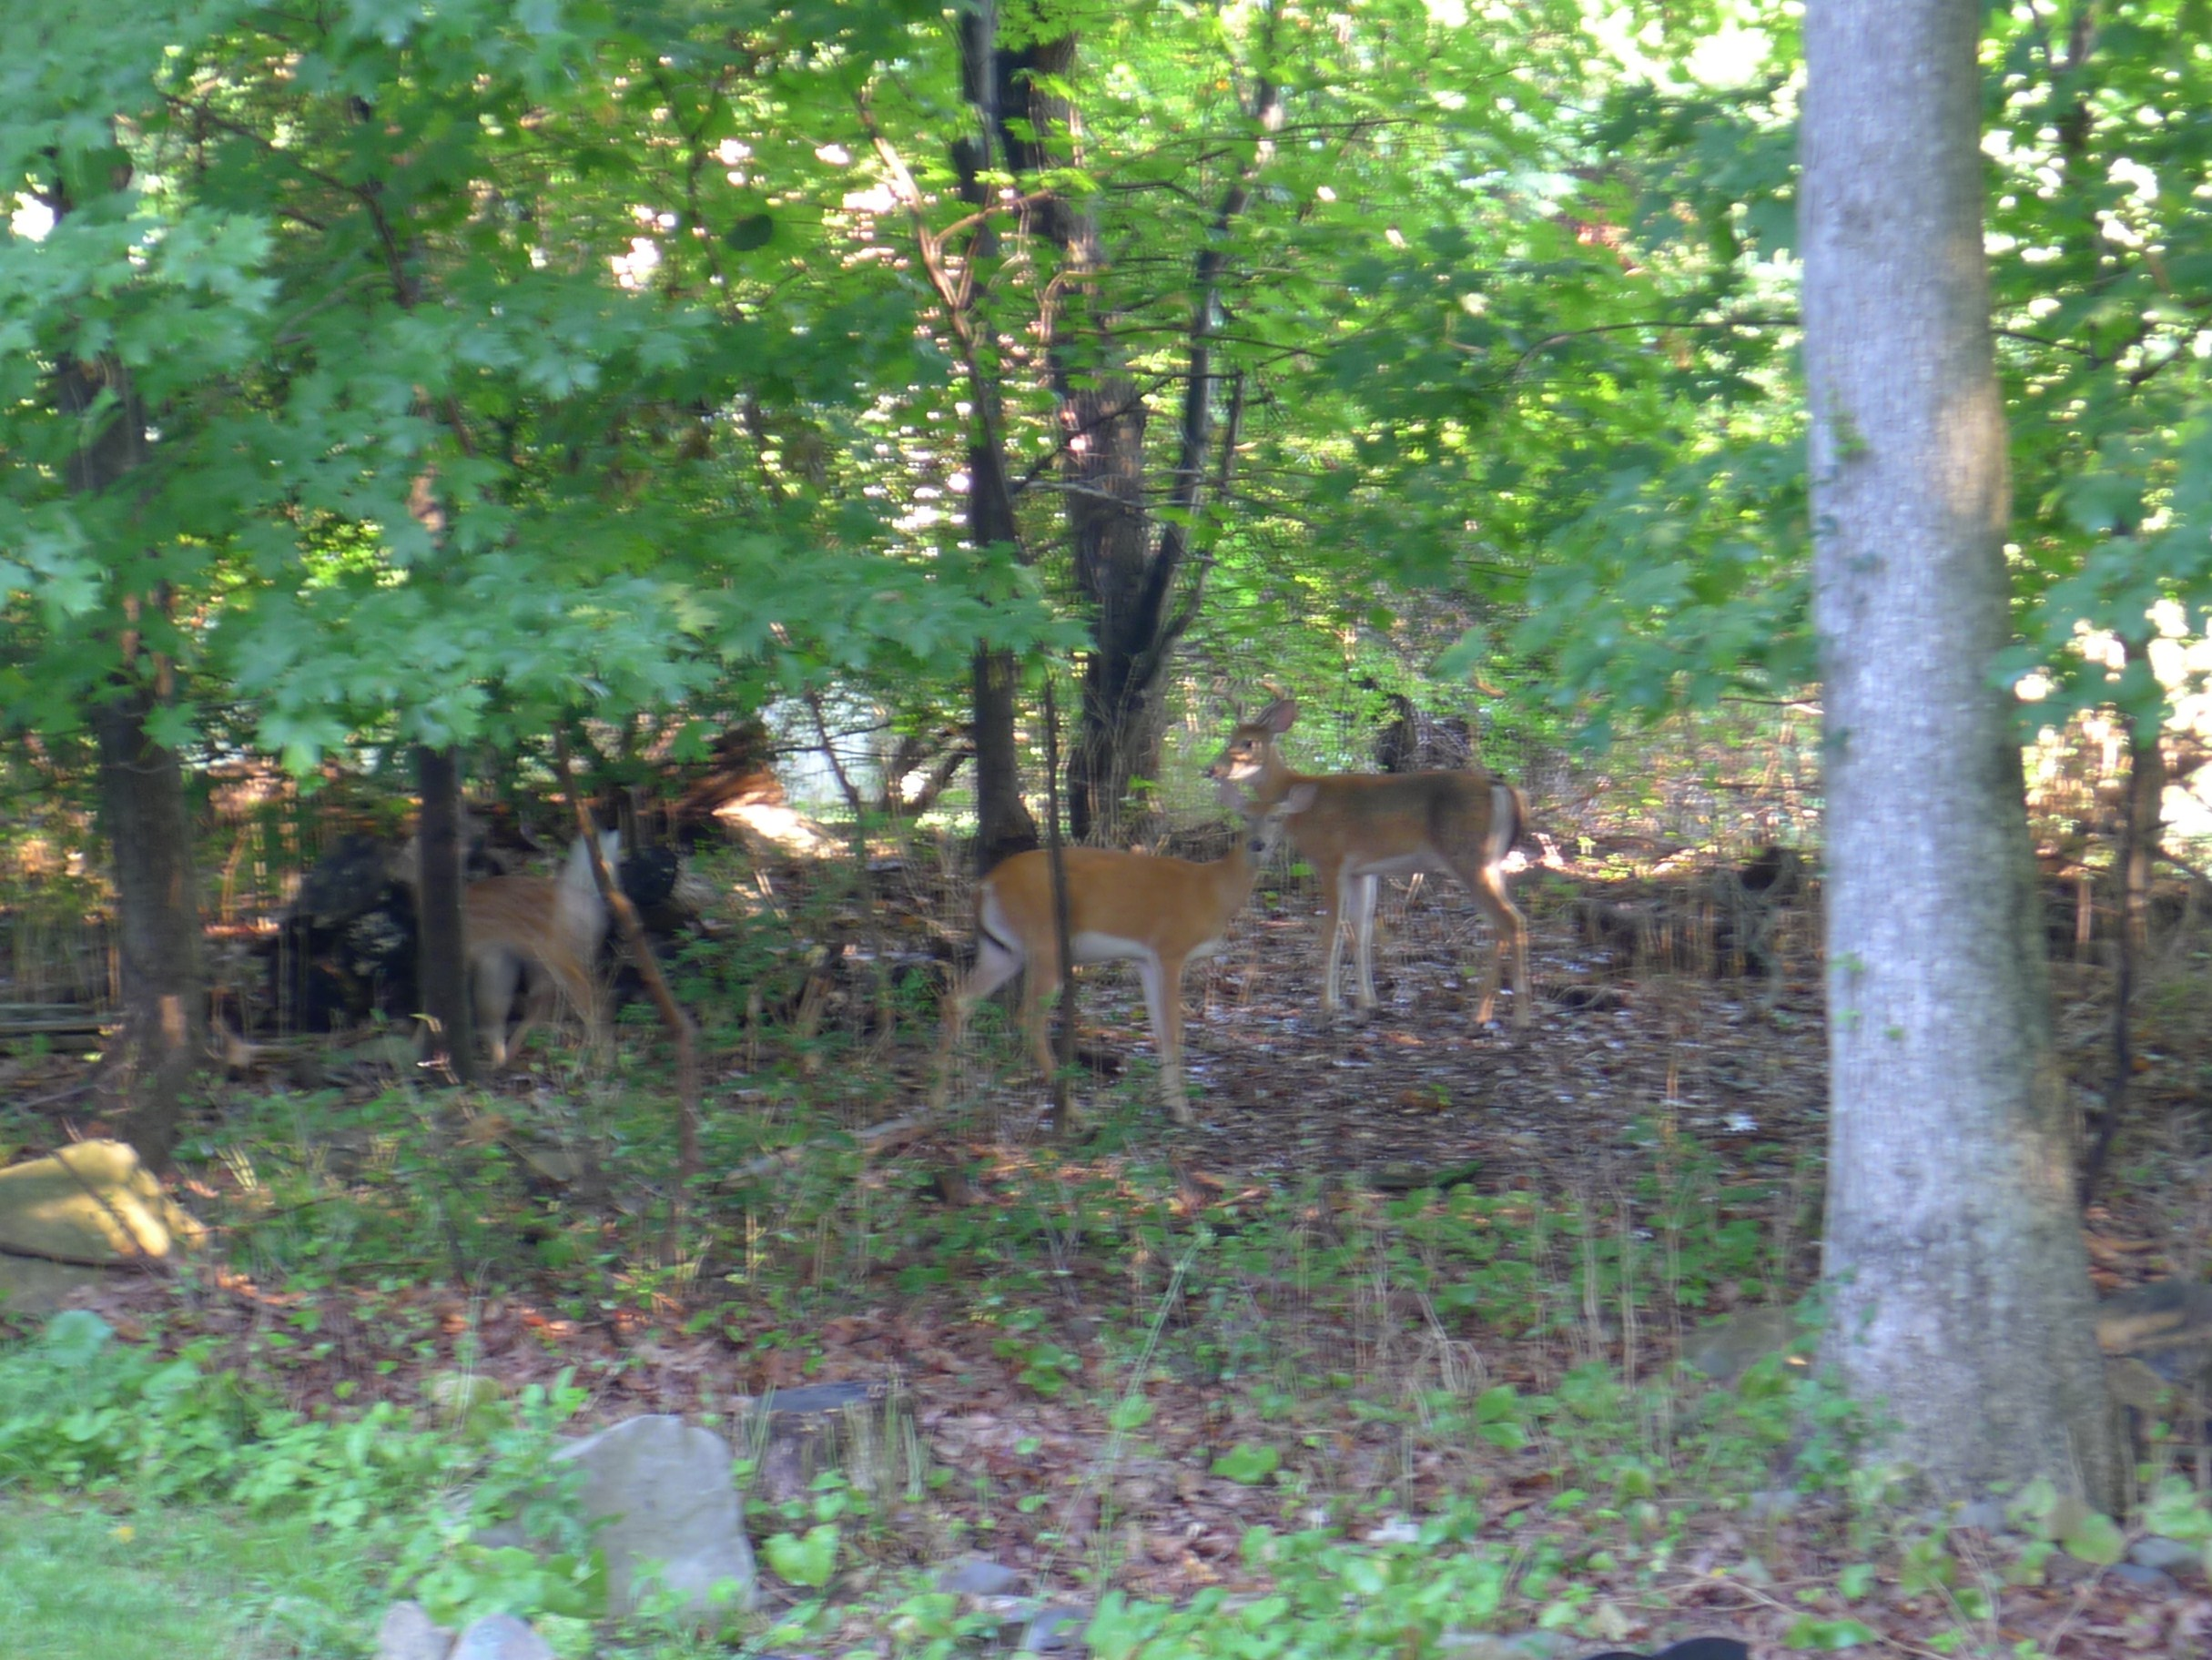 Deer family on property